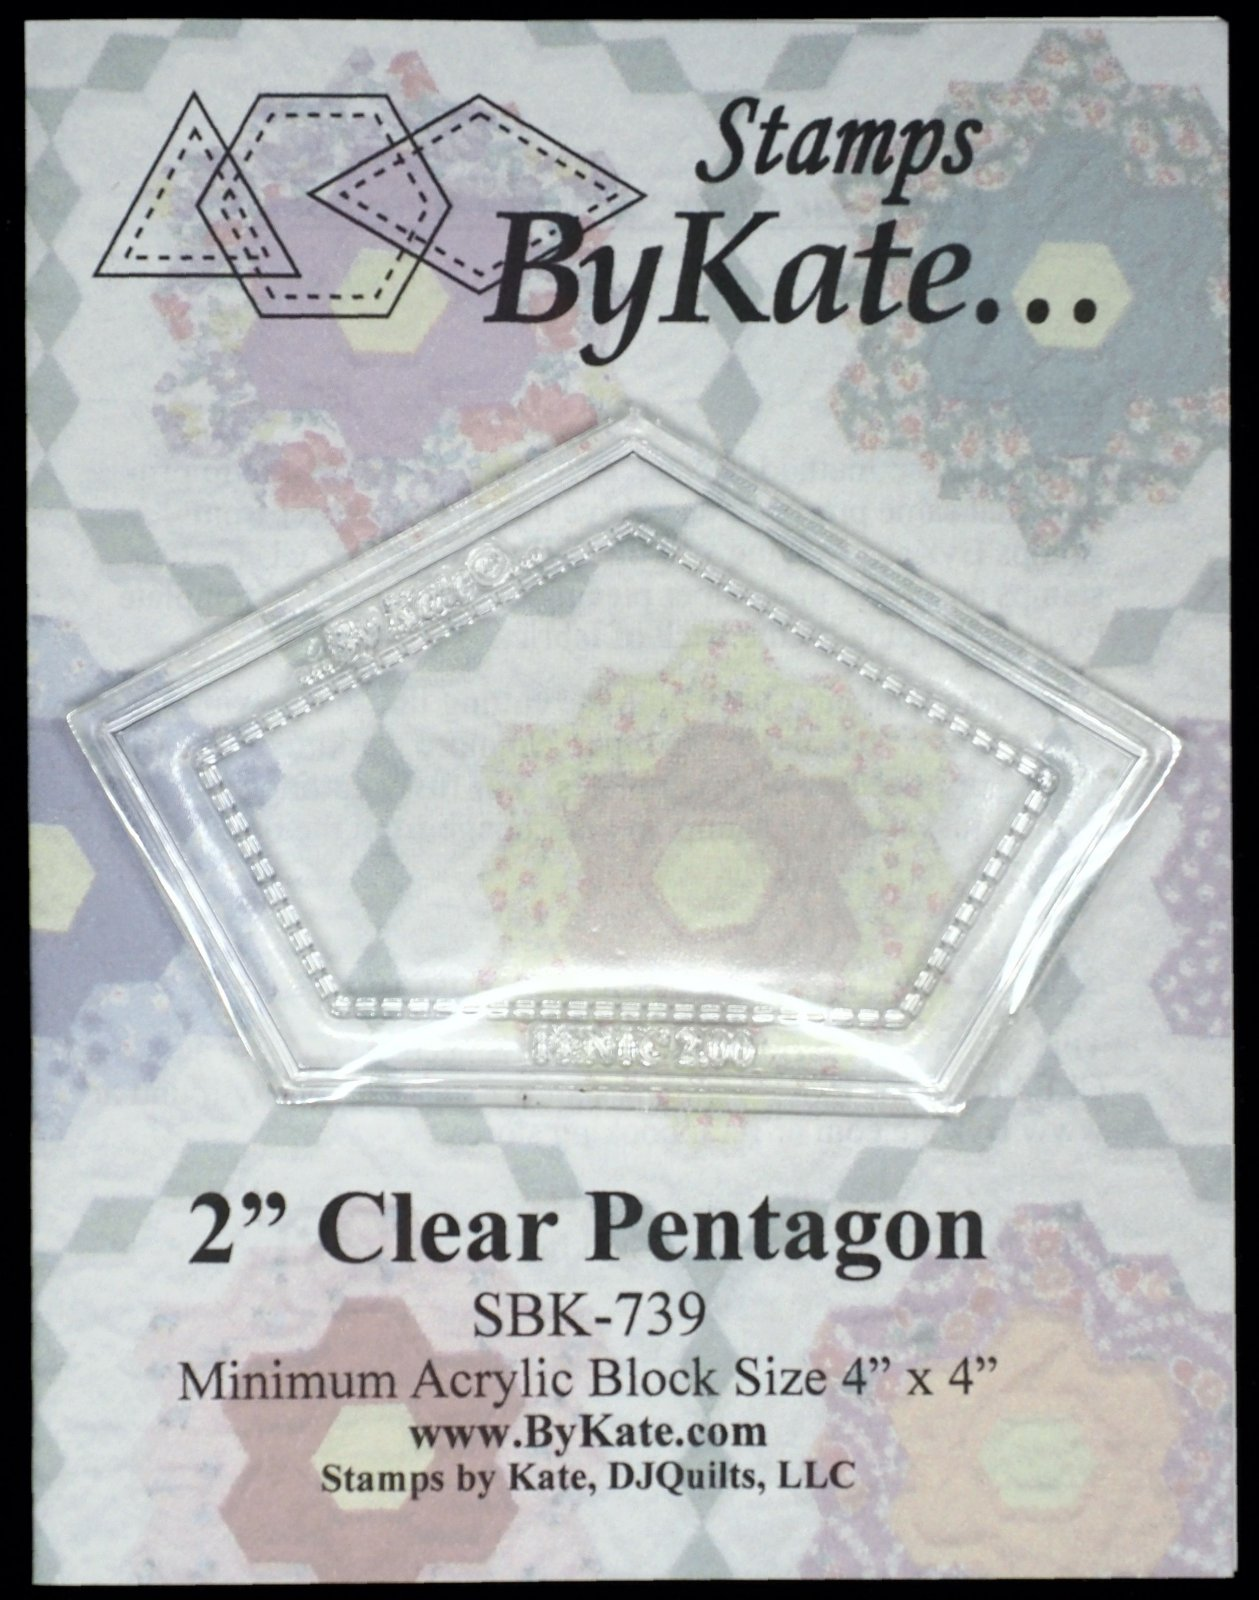 Clear Pentagon Stamps